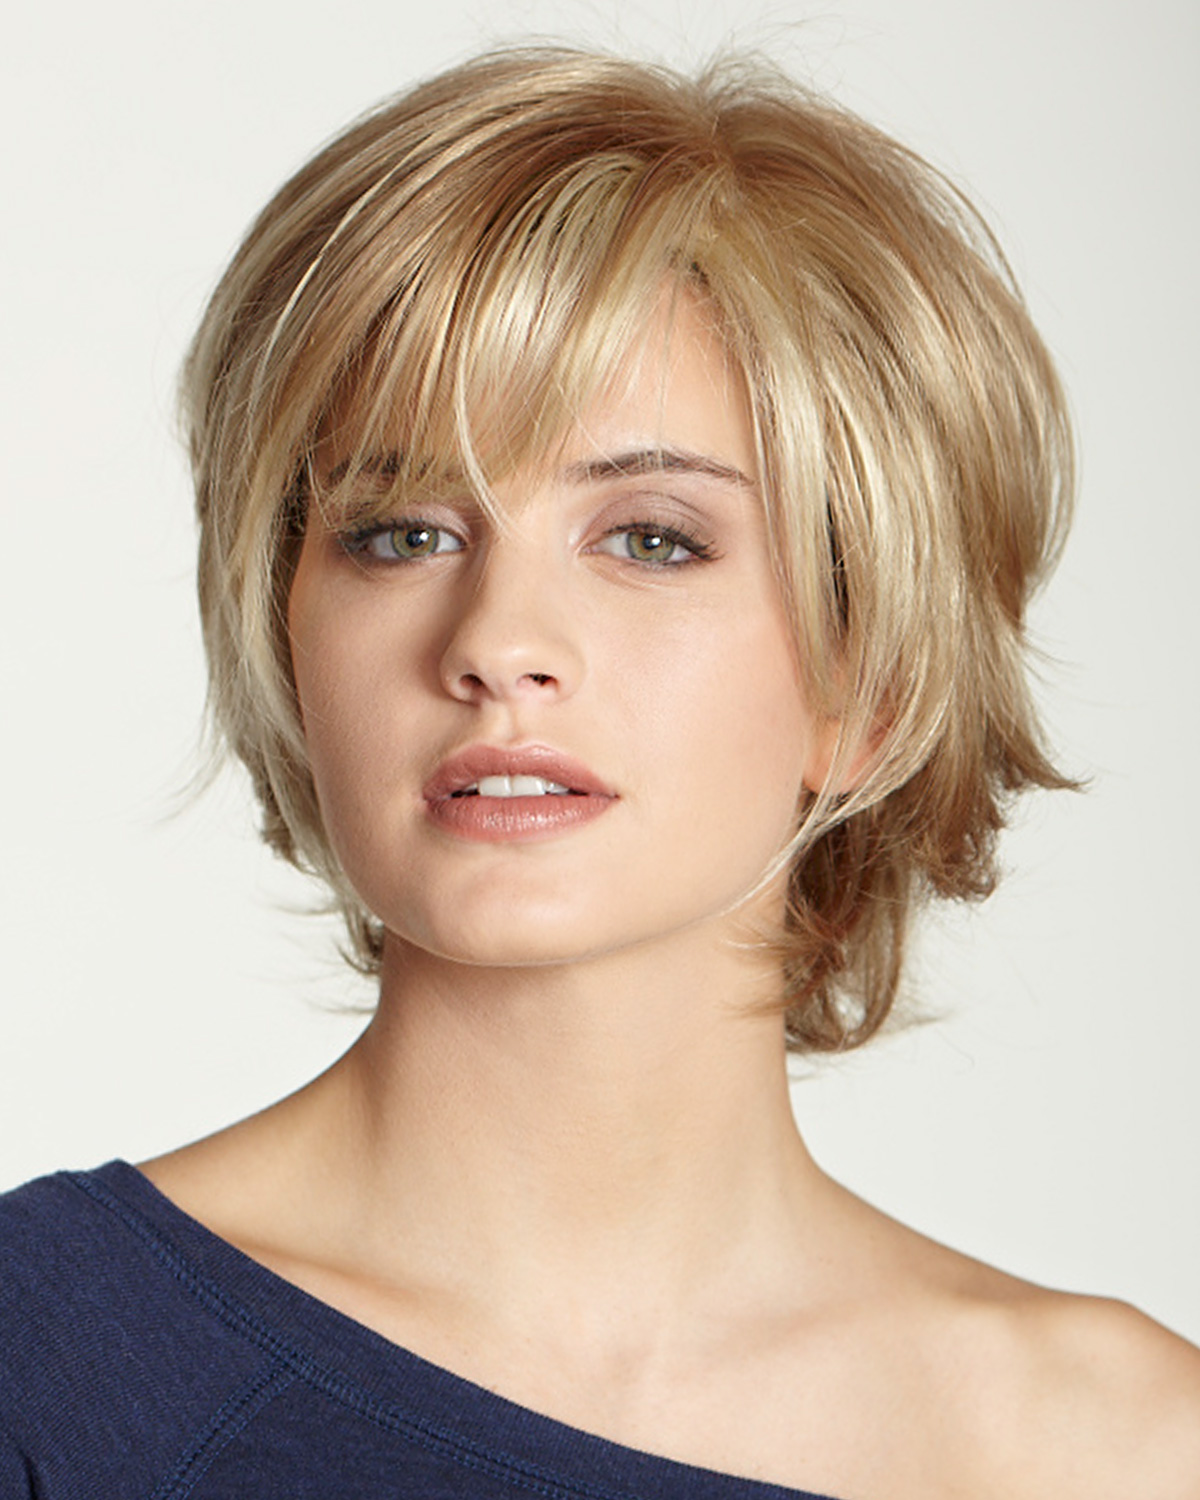 cosplay wig affordable wigs that look real